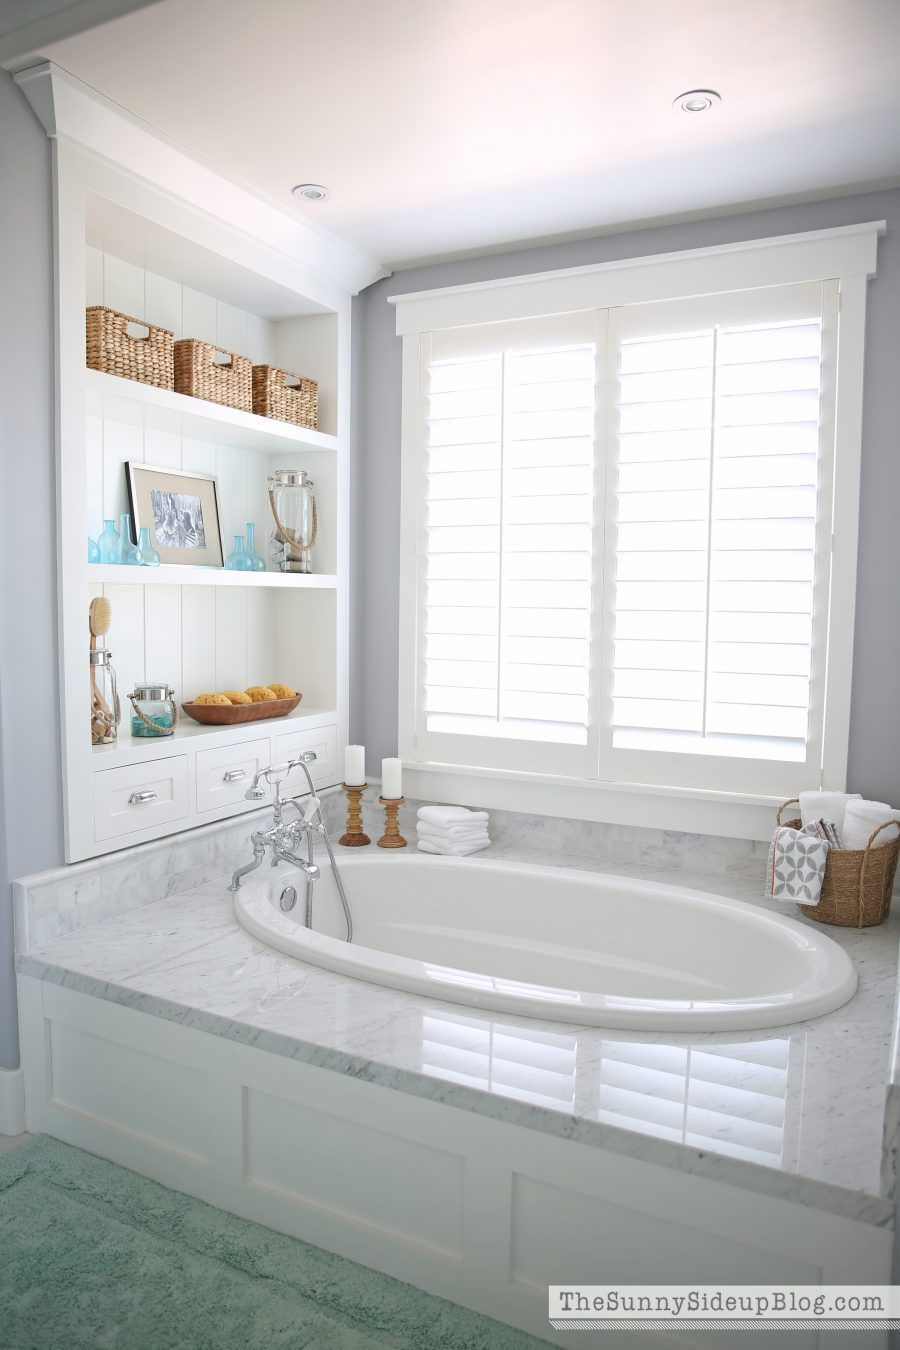 These bathroom remodel ideas are unique and appeal to home buyers